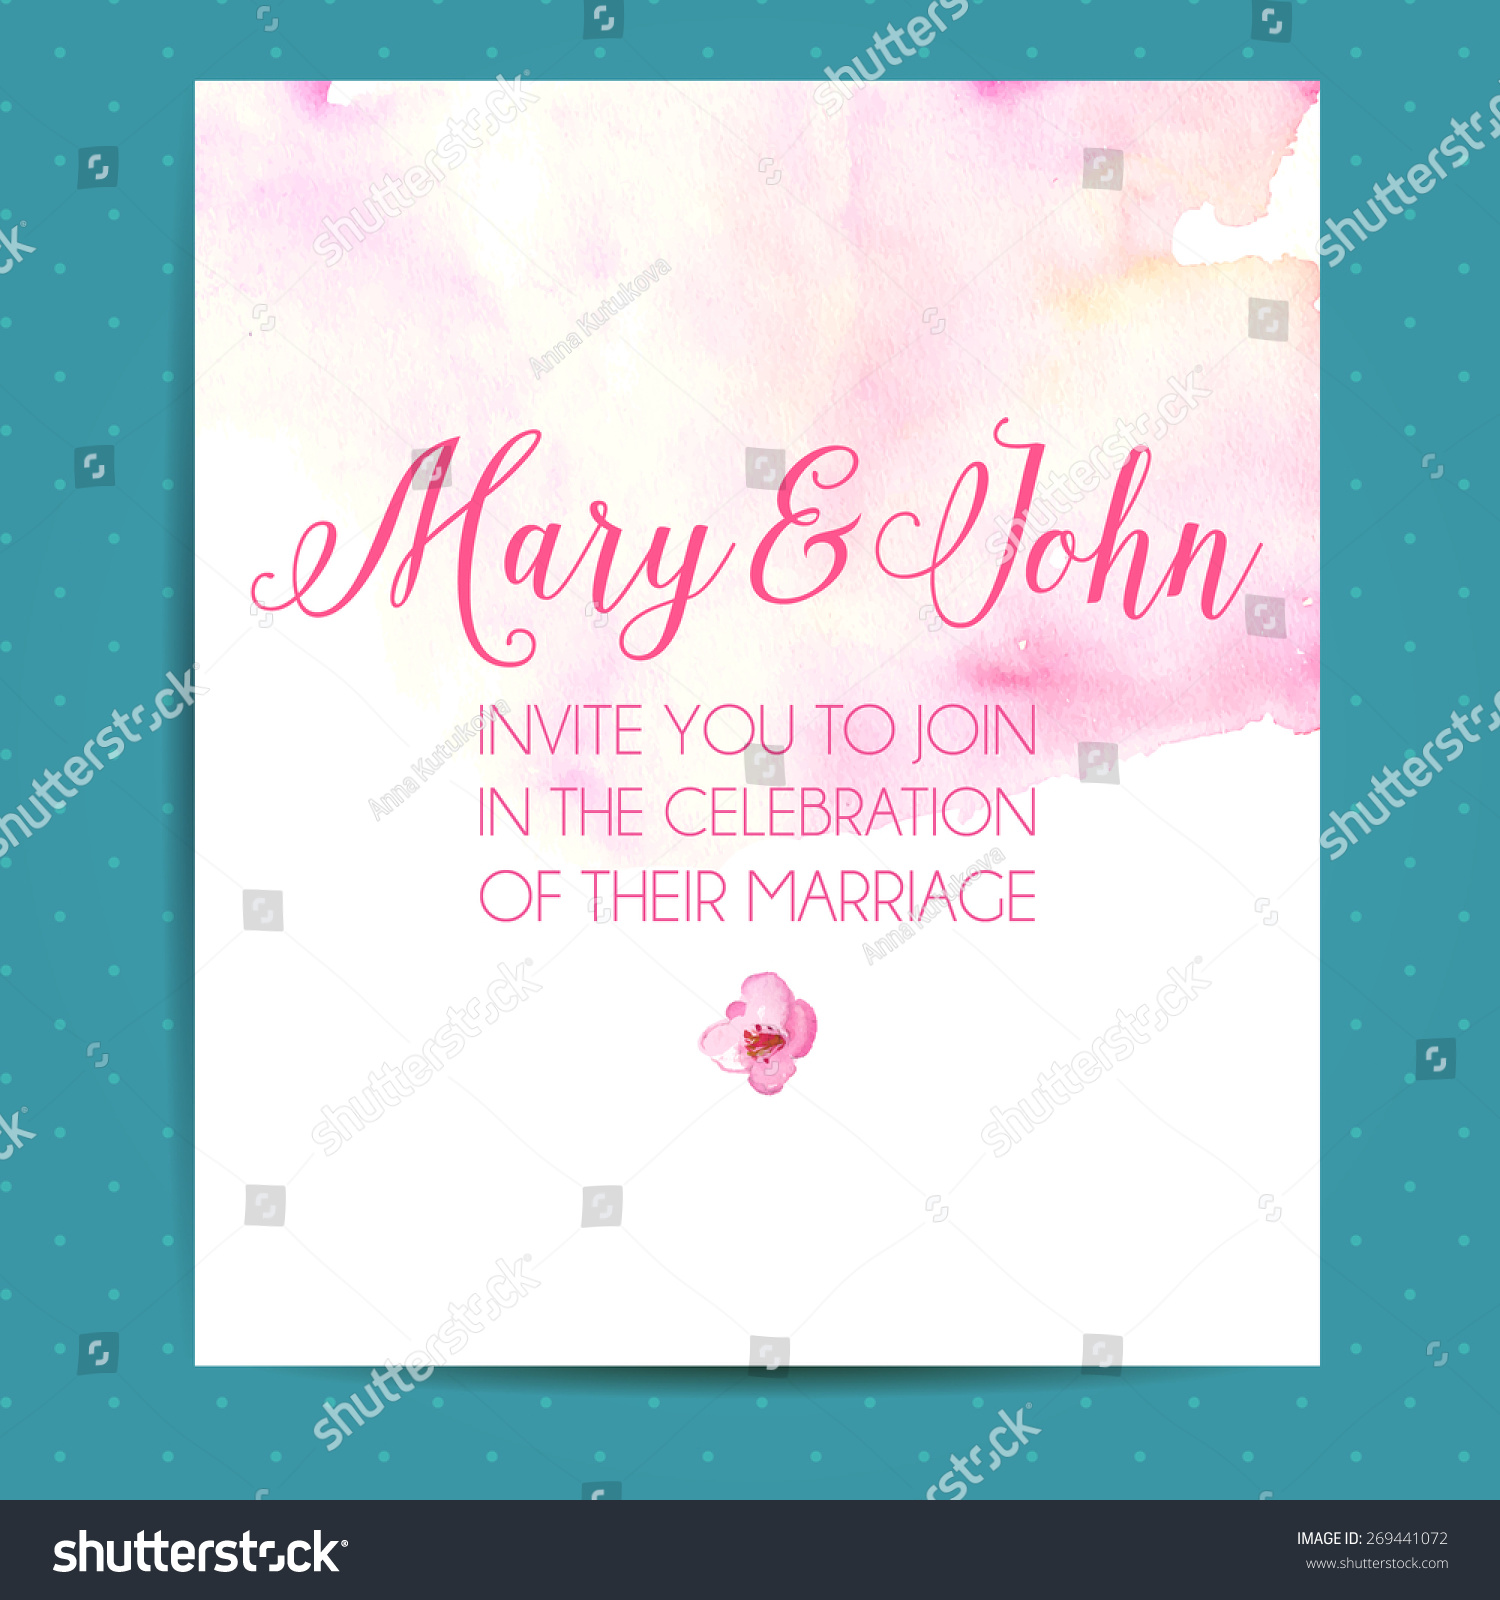 wedding invitation layout pink watercolor paint stock vector